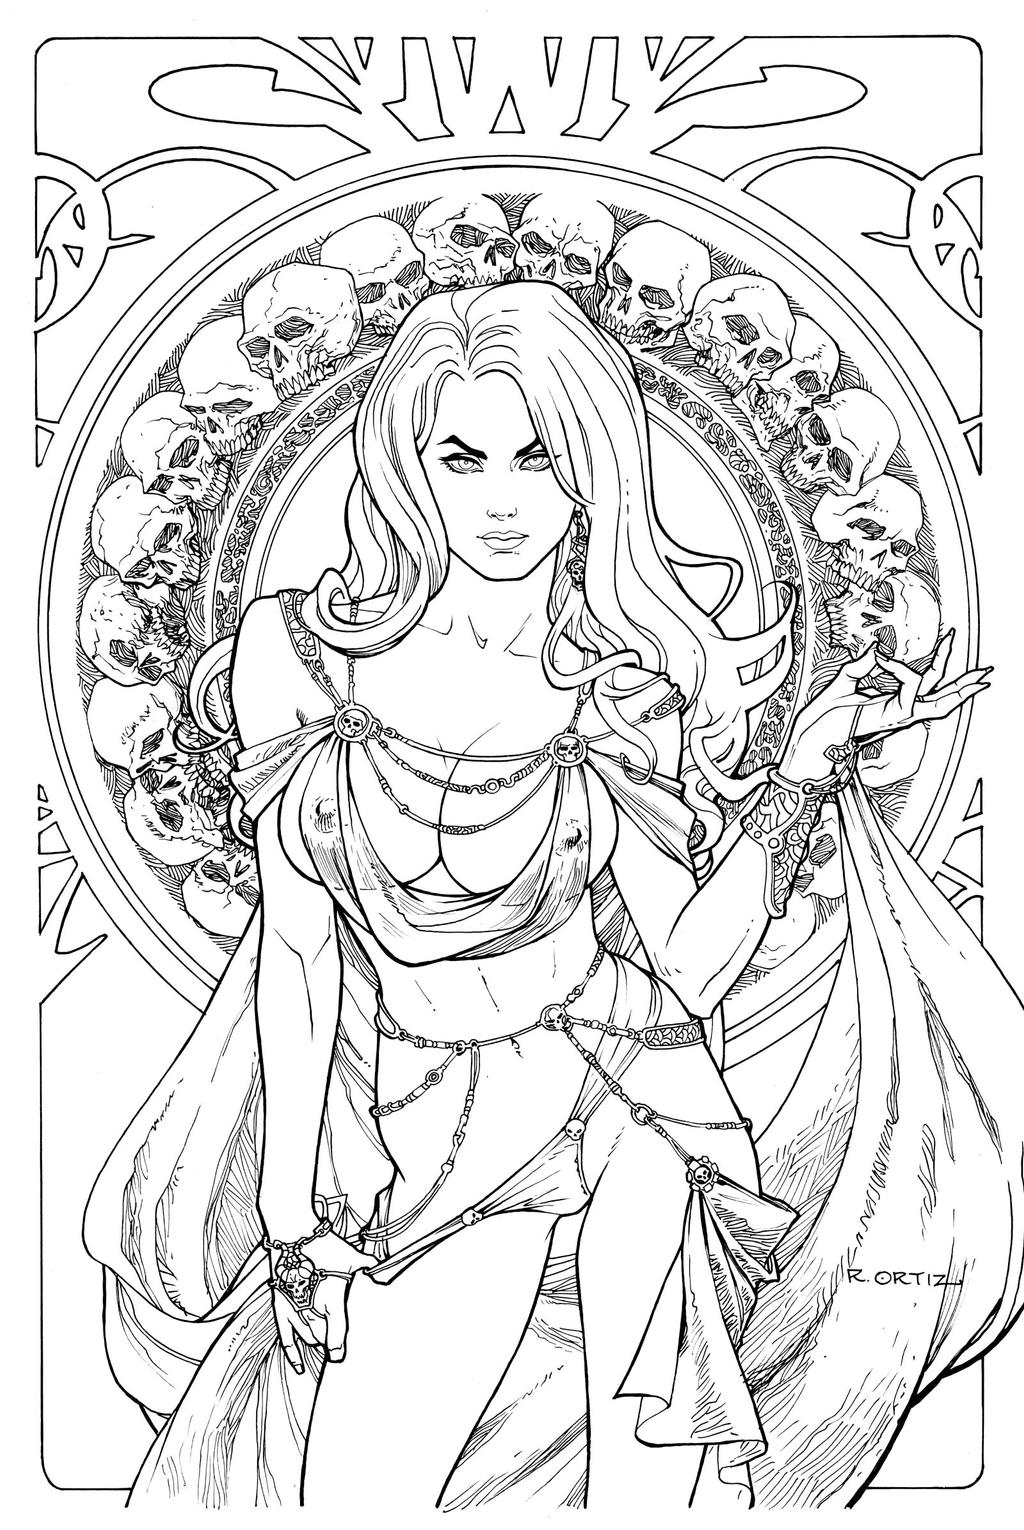 lady_death__regal_jewel_edition__line_art__by_ric1975 d5w2e1l